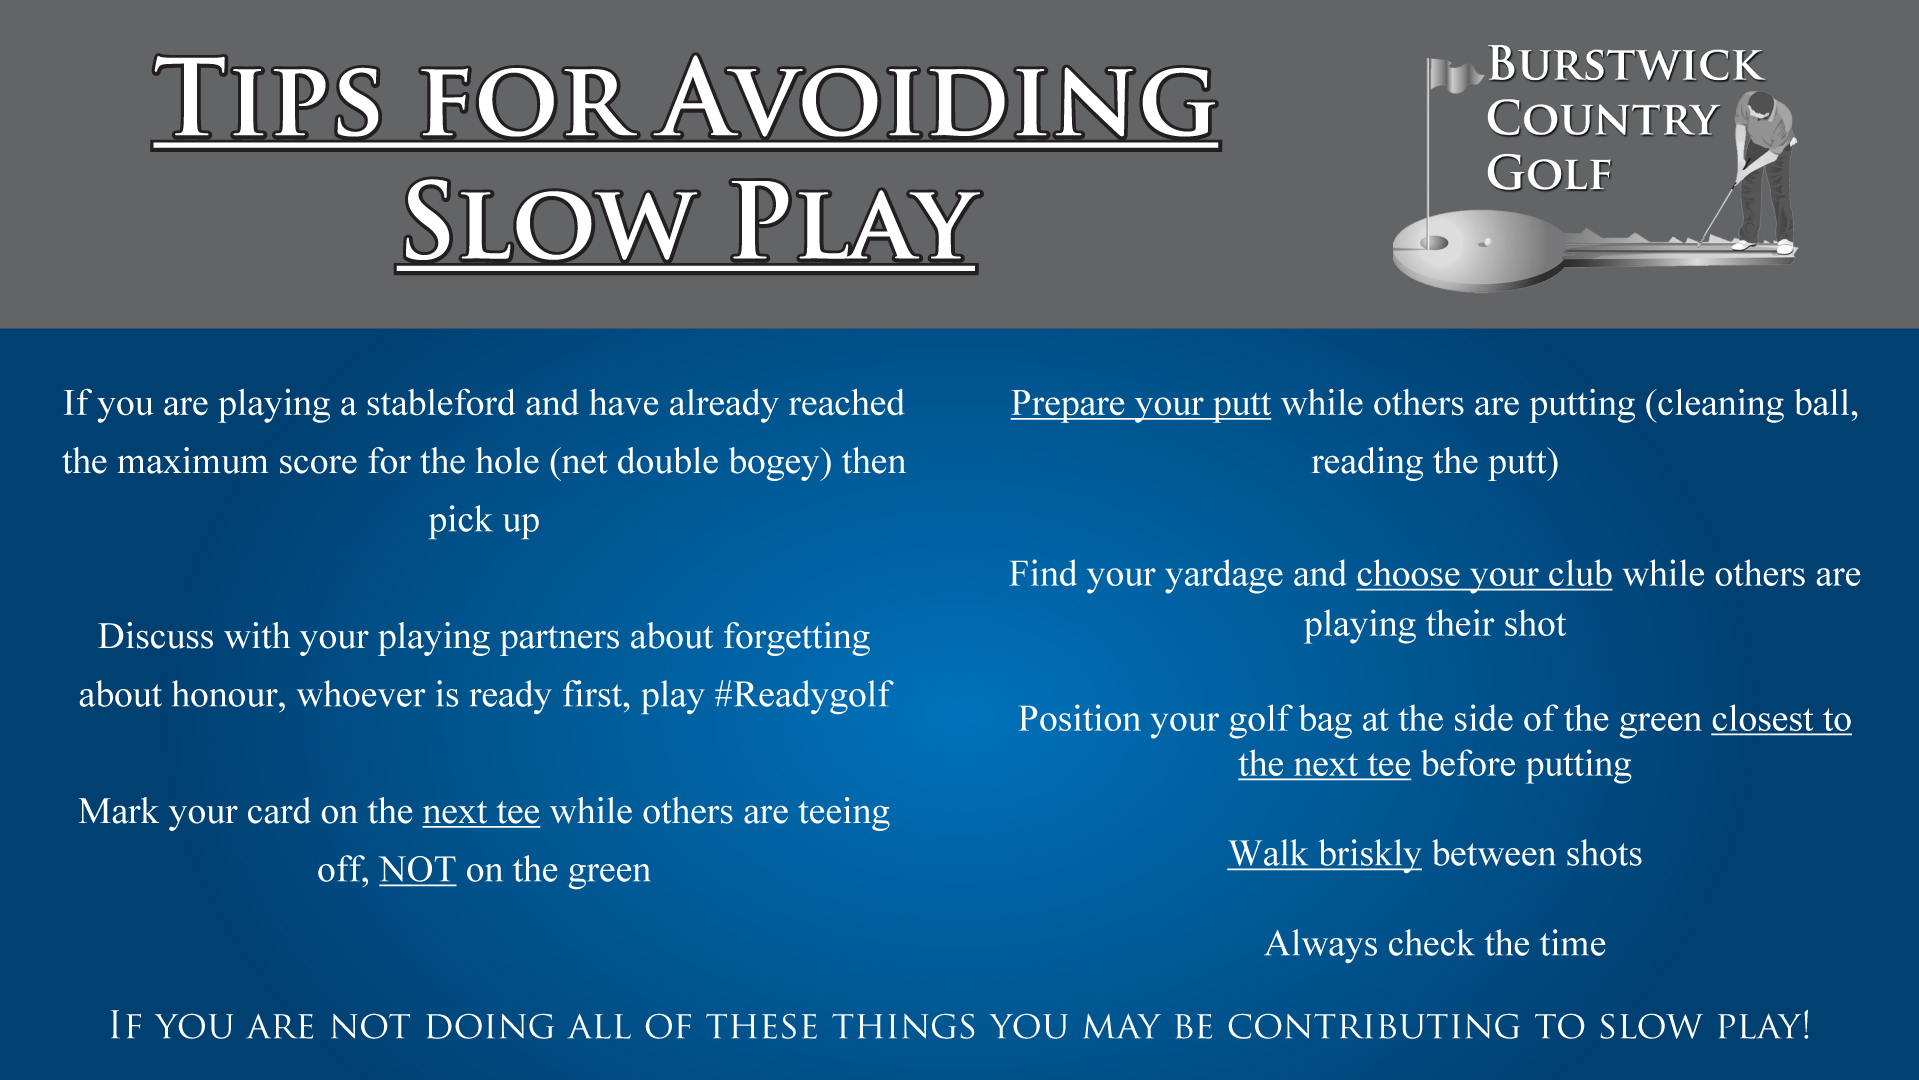 Tips to avoid slow play